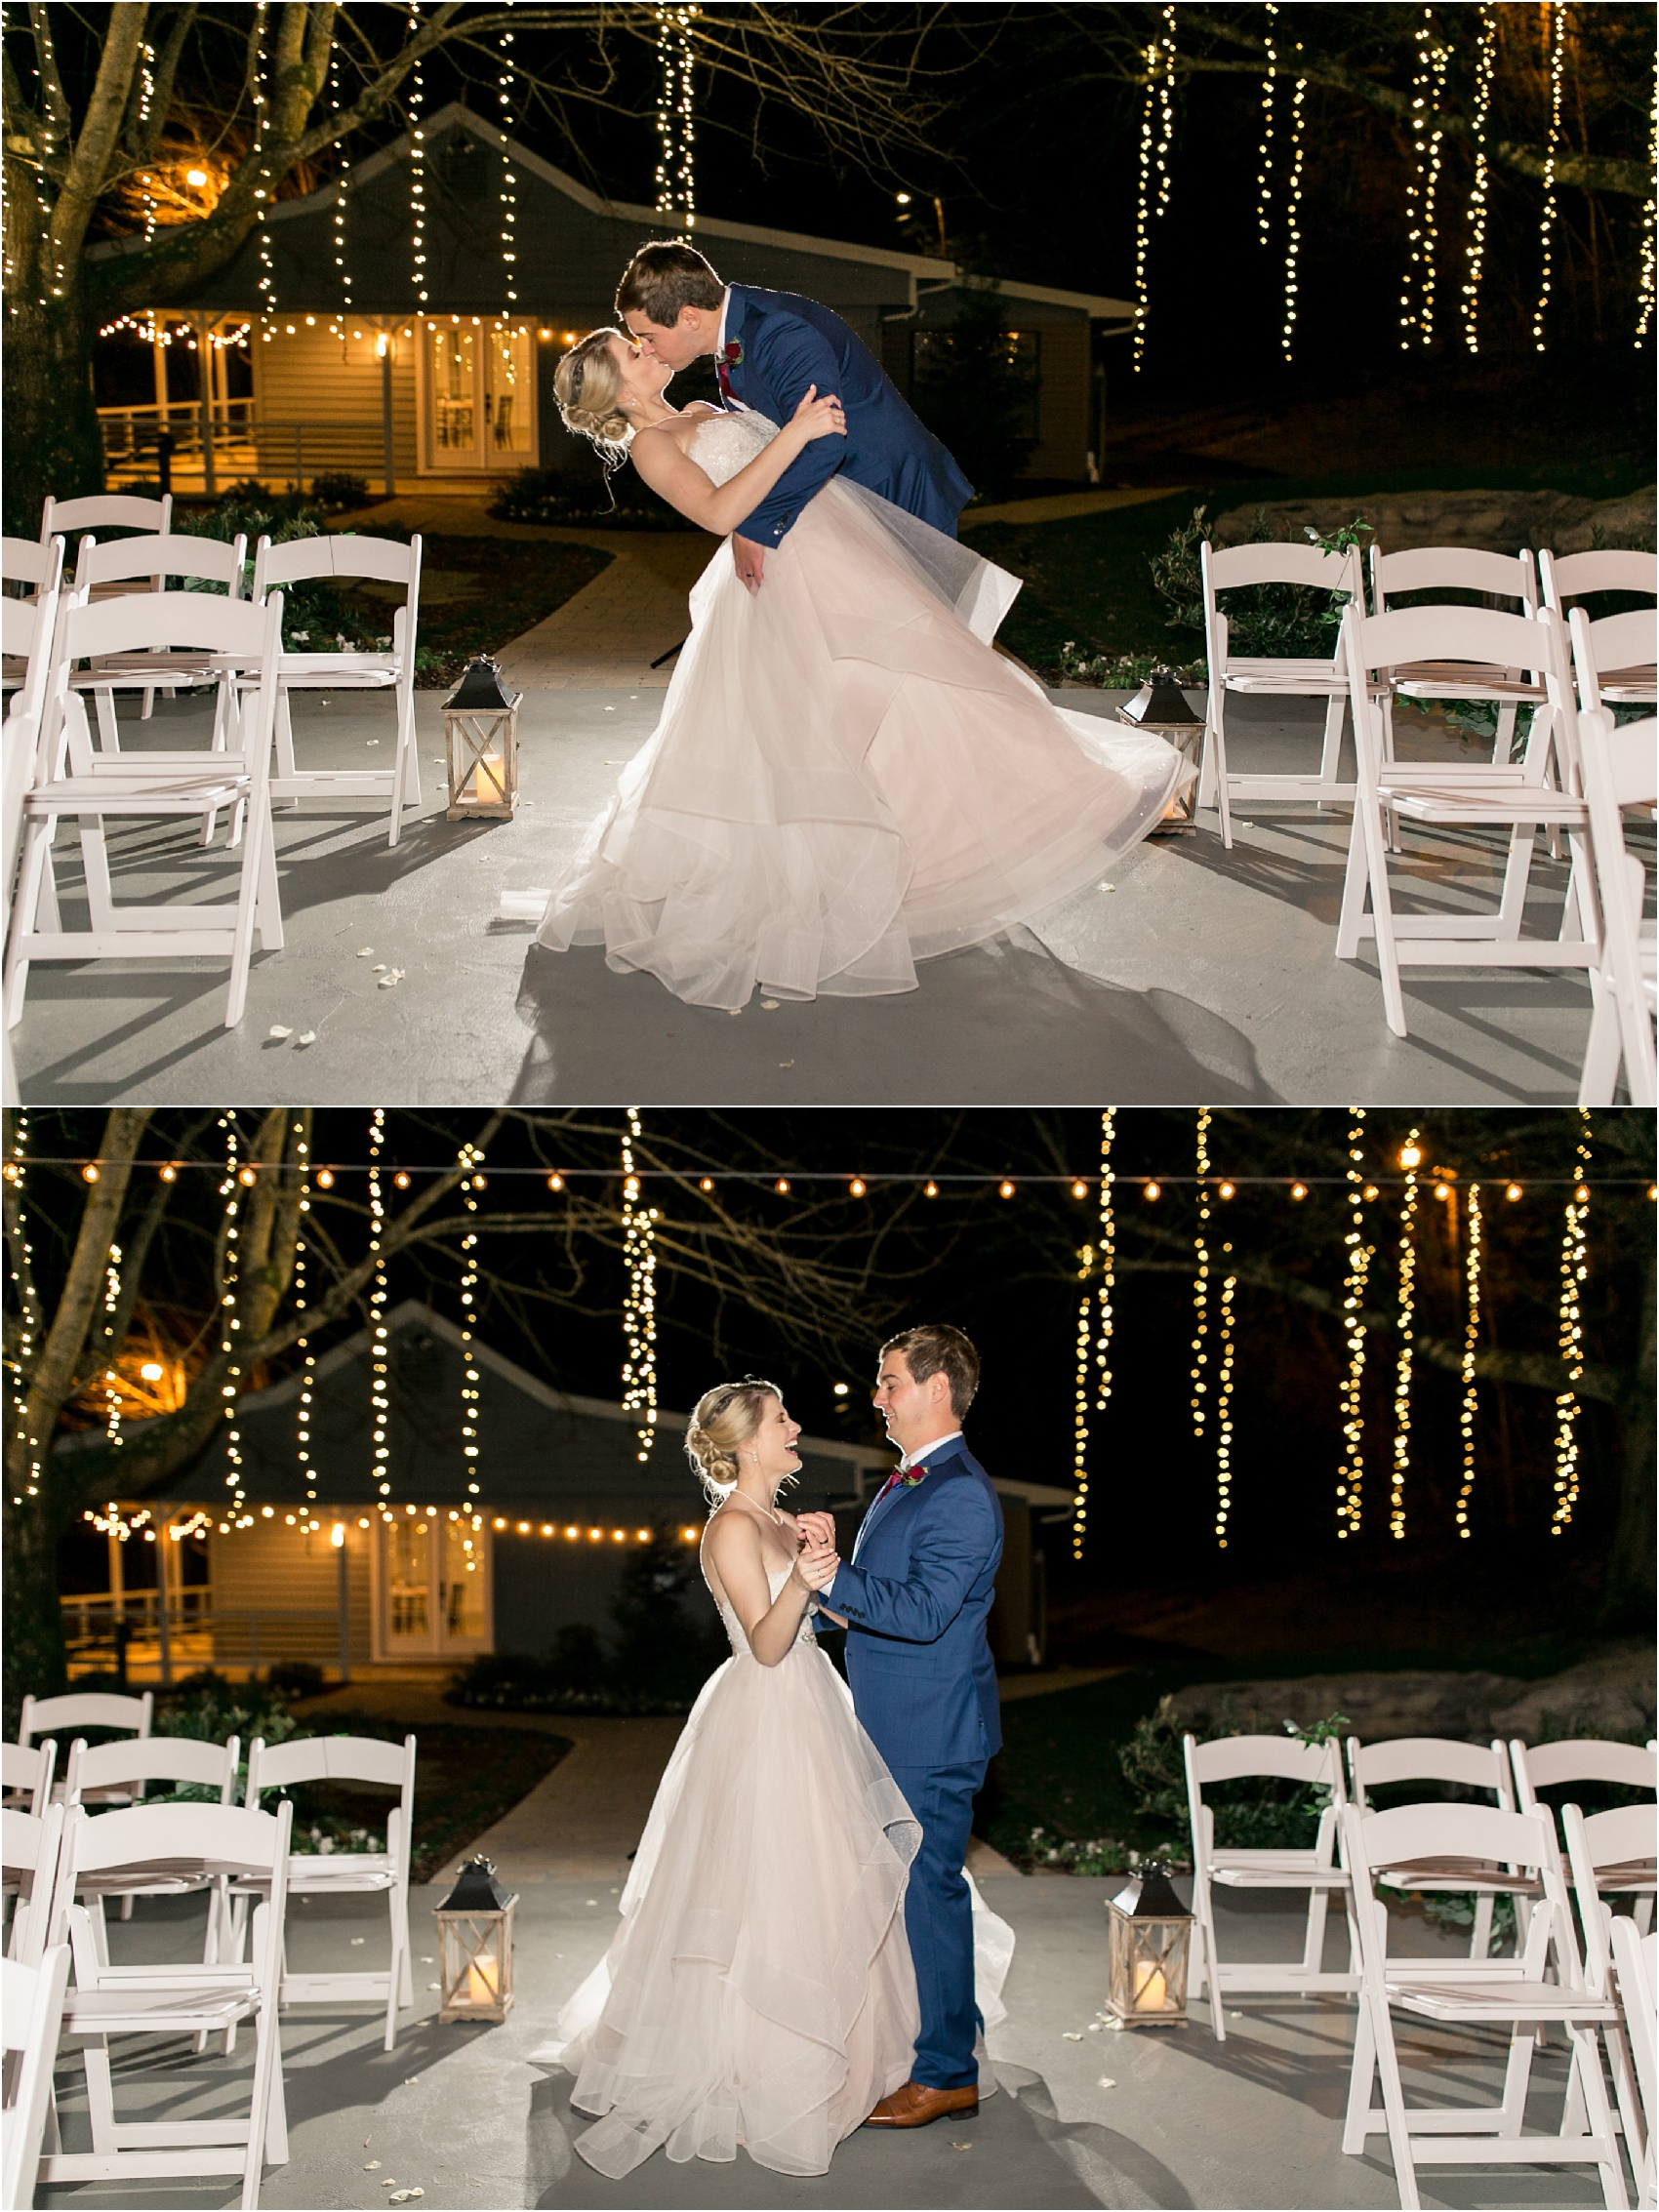 Savannah Eve Photography- Brandon-Brown Wedding-107.jpg